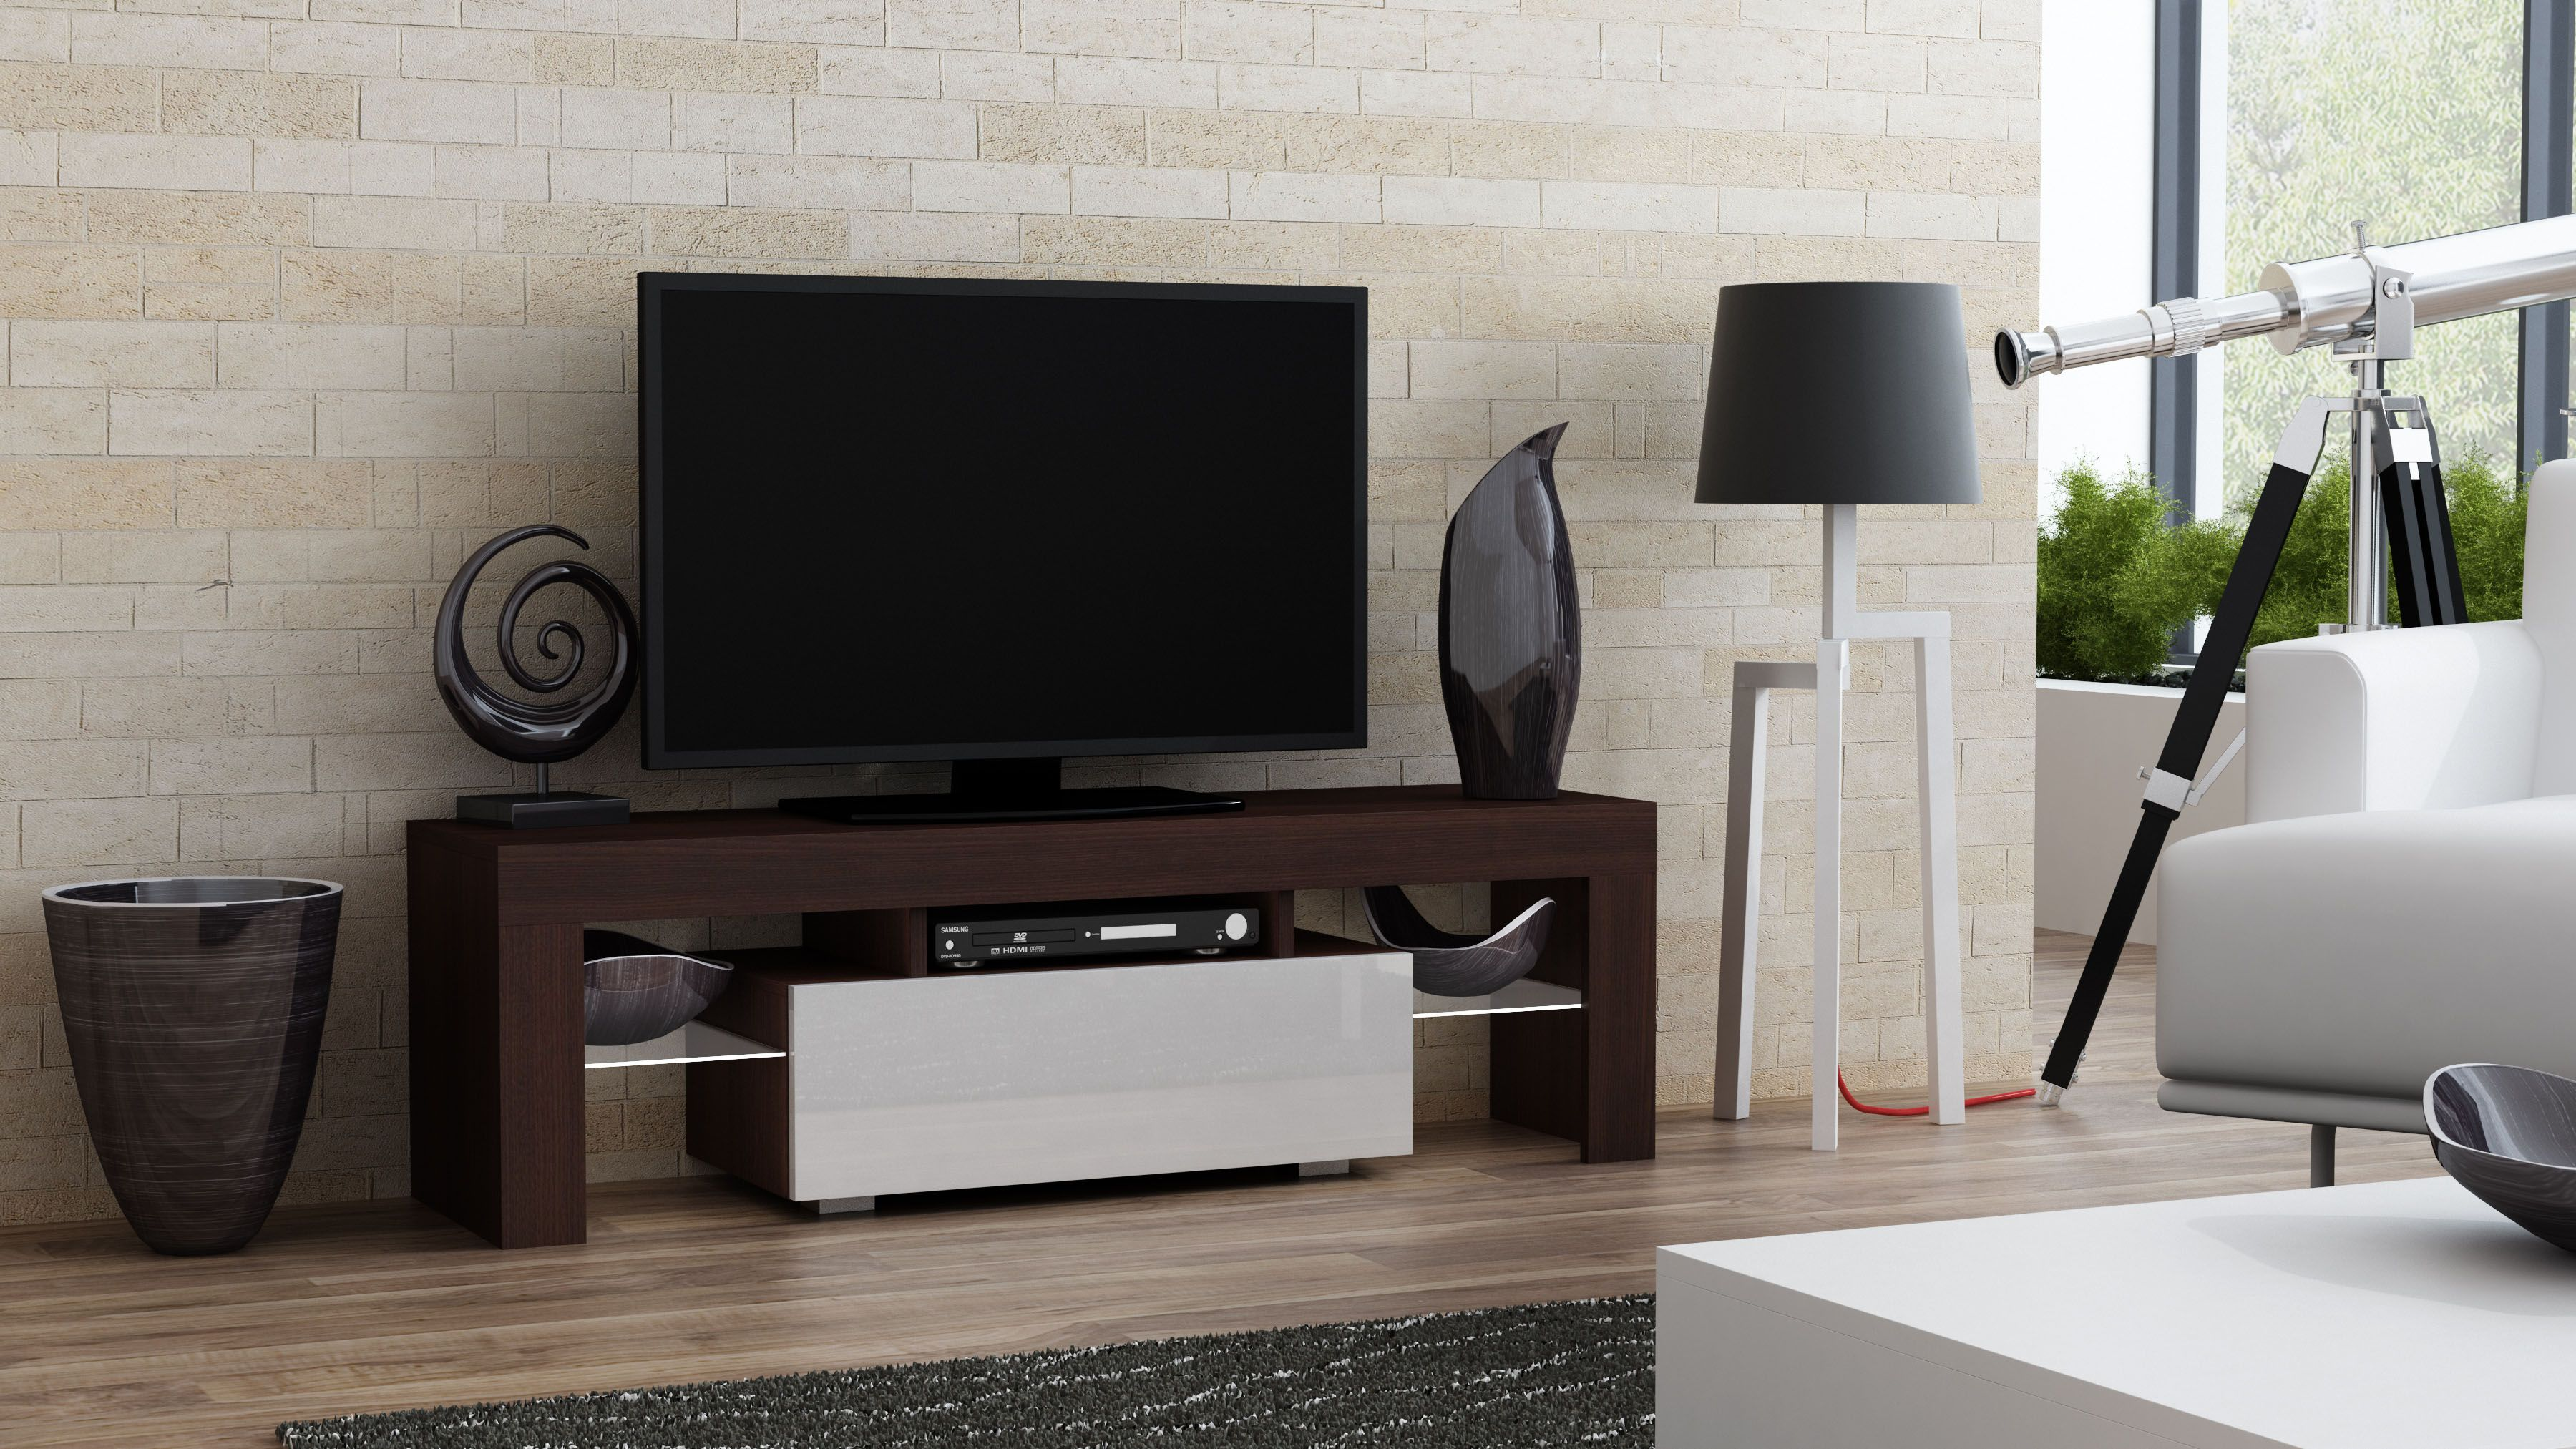 Milano 130 - wenge tv stand with shelves | Meuble tv led, Meuble de télévision, Meuble tv home cinema